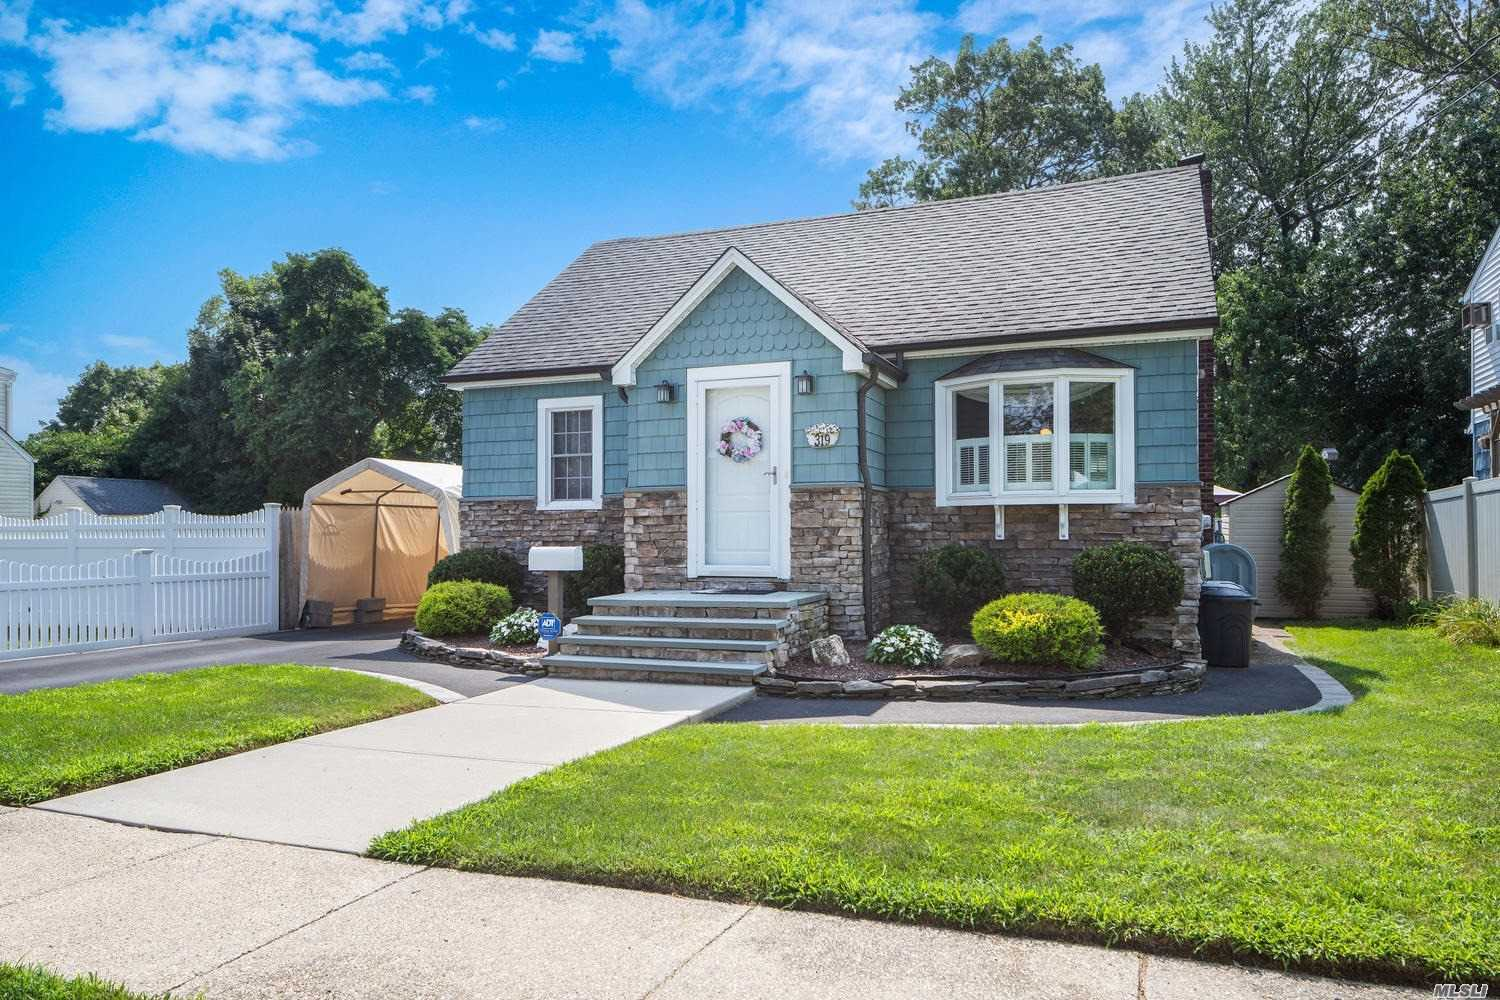 Spectacular Cape In The Village Of Lindenhurst. 1st Floor Features 2 Bedrooms, Full Updated Bath, Living Room, Dining Room And Kitchen With Granite Counters And S/S App Cooled With A Mini Split Ac. 2nd Floor Features 2 Bedrooms And A Full Bath. The Basement Is Clean, Bright And Has A Separate Outside Entrance. Perfectly Landscaped, New Driveway, 1.5 Car Garage And Super Low Taxes!